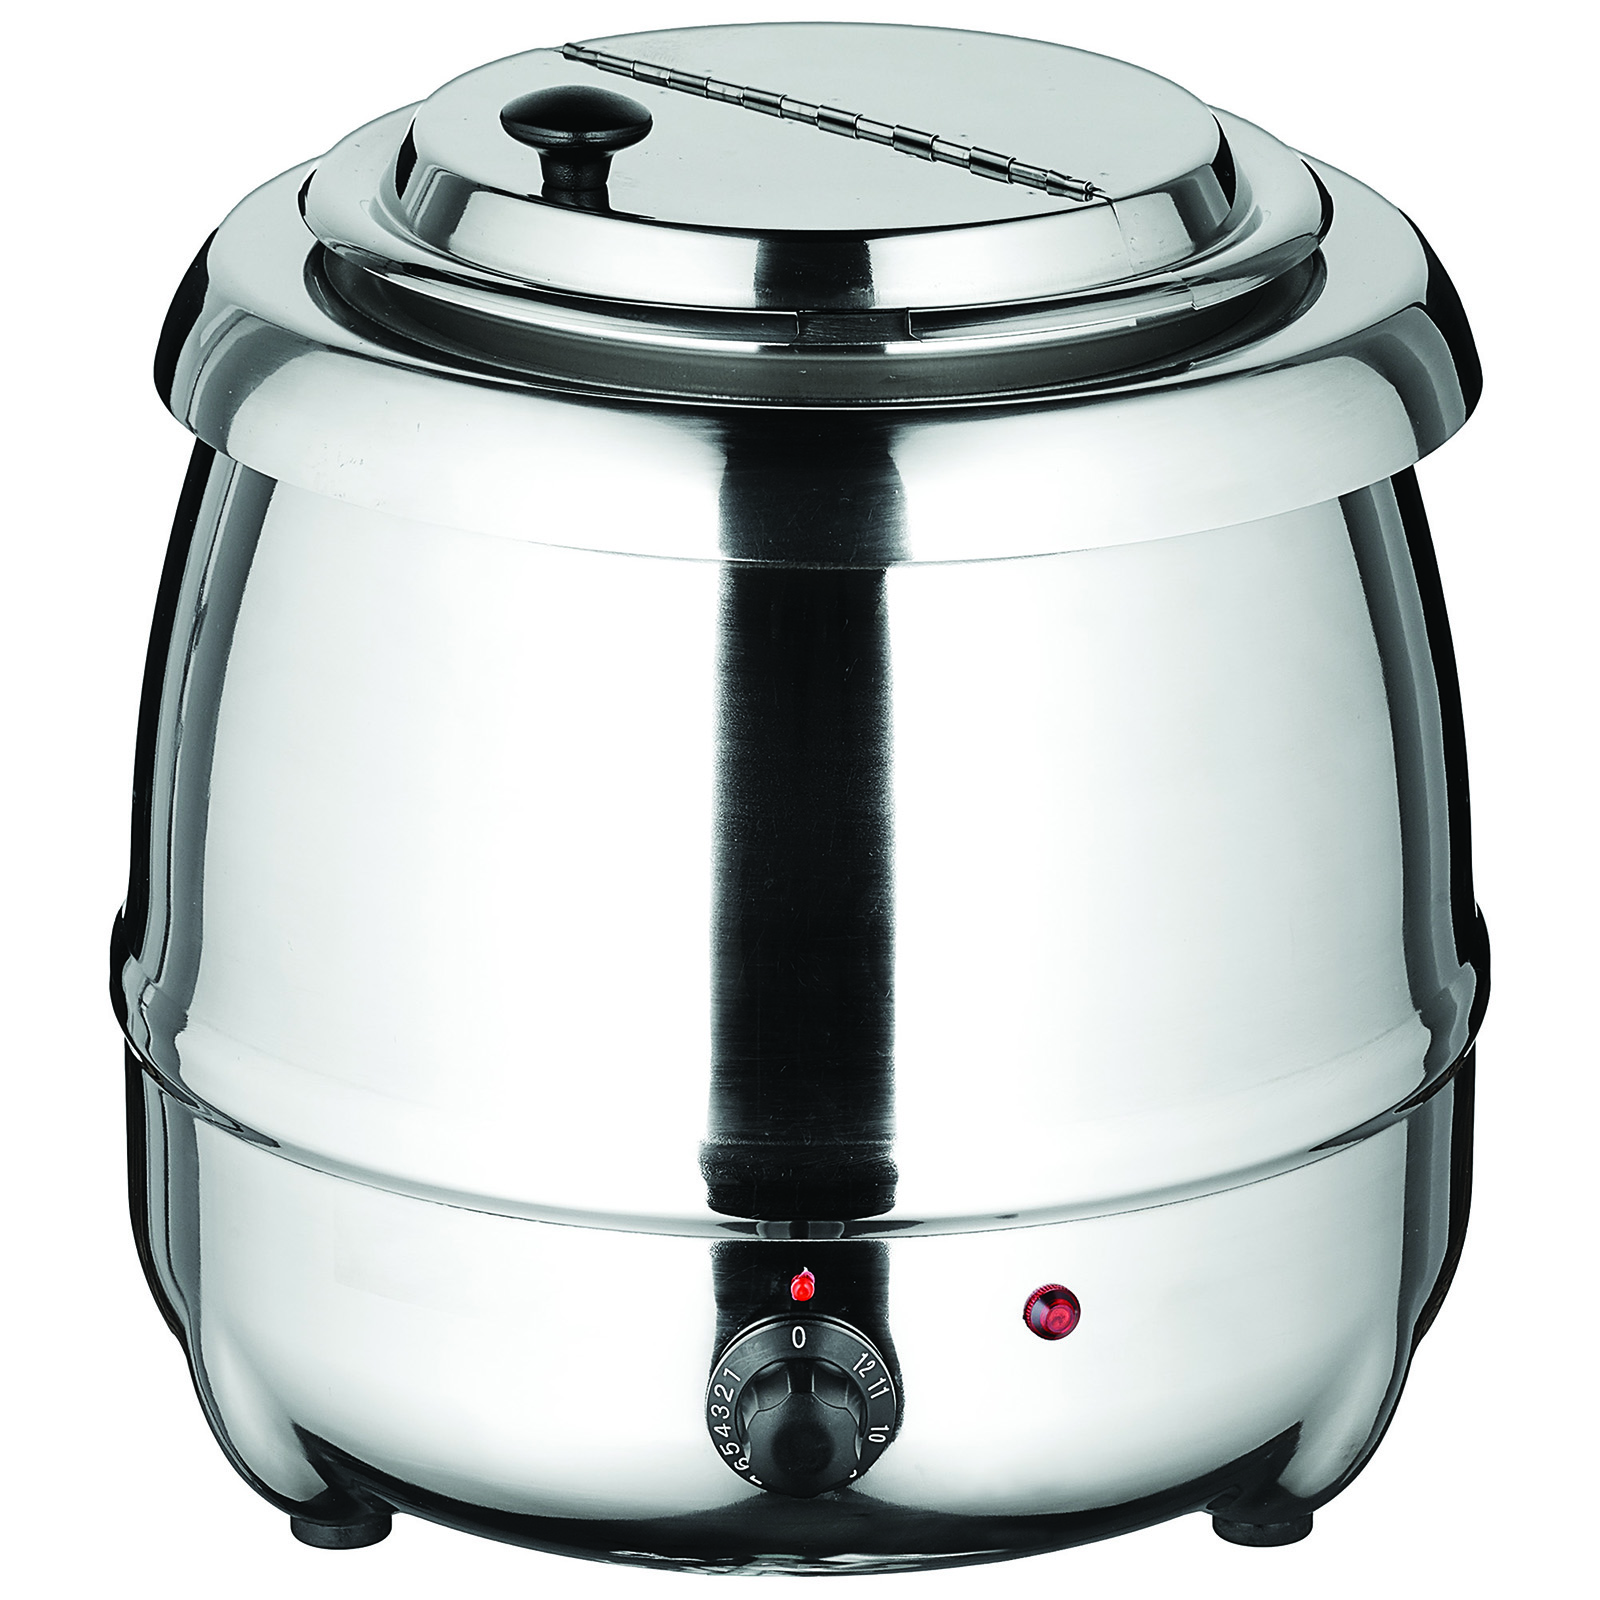 Winco ESW-70 soup kettle